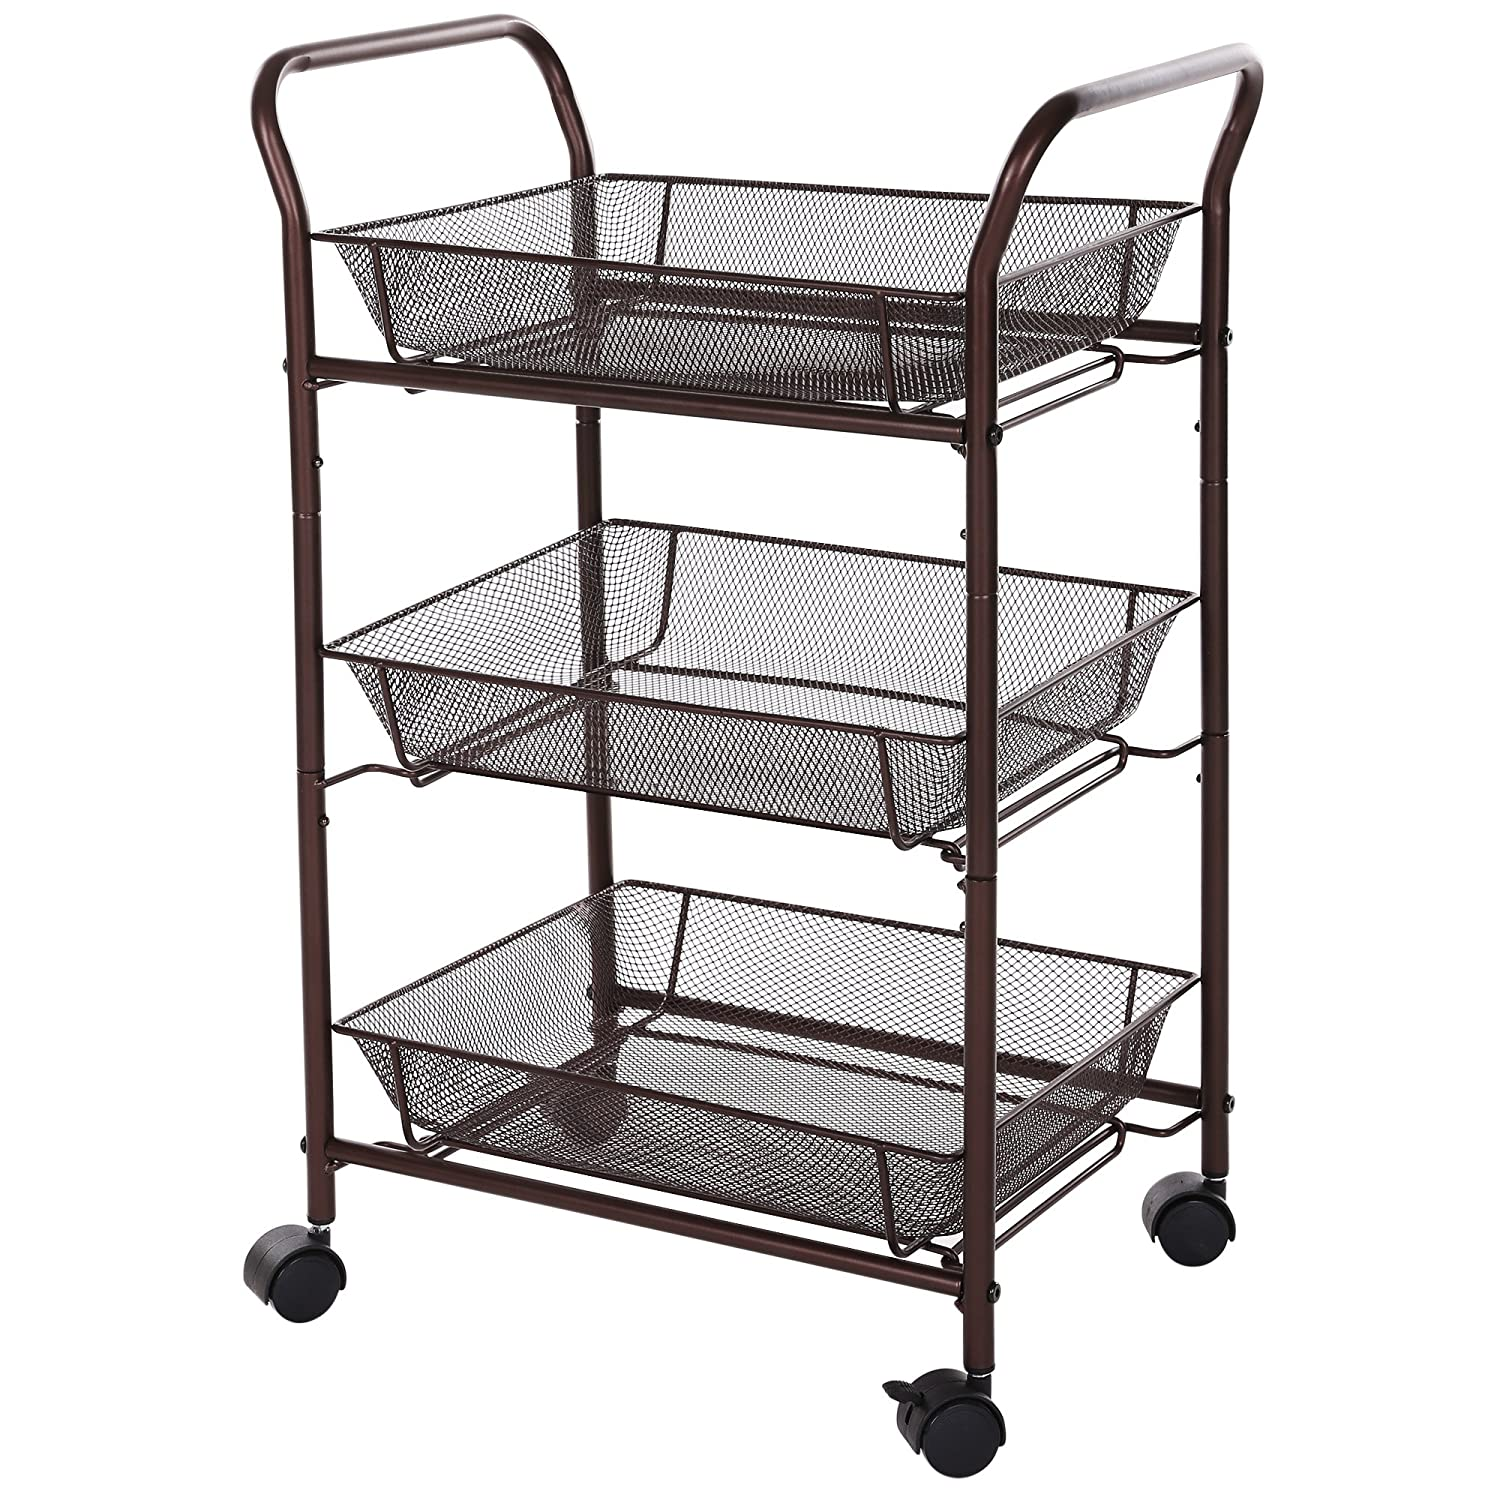 rolling storage carts bathroom trolley rolling kitchen storage cart amp baskets on 25642